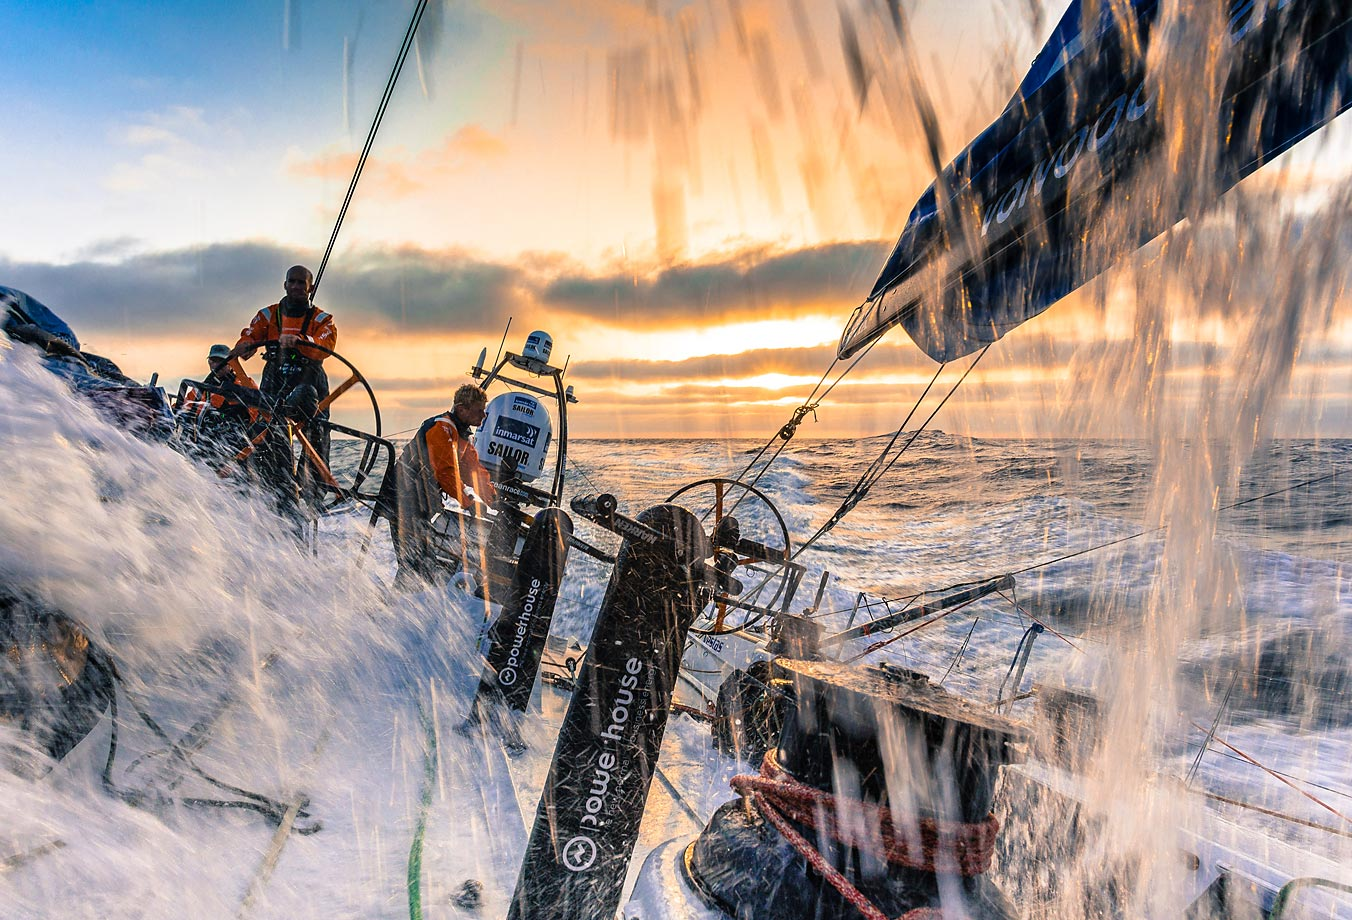 Team Vestas Wind competes in the Volvo Ocean Race, the world's premier ocean race for professional racing crews.